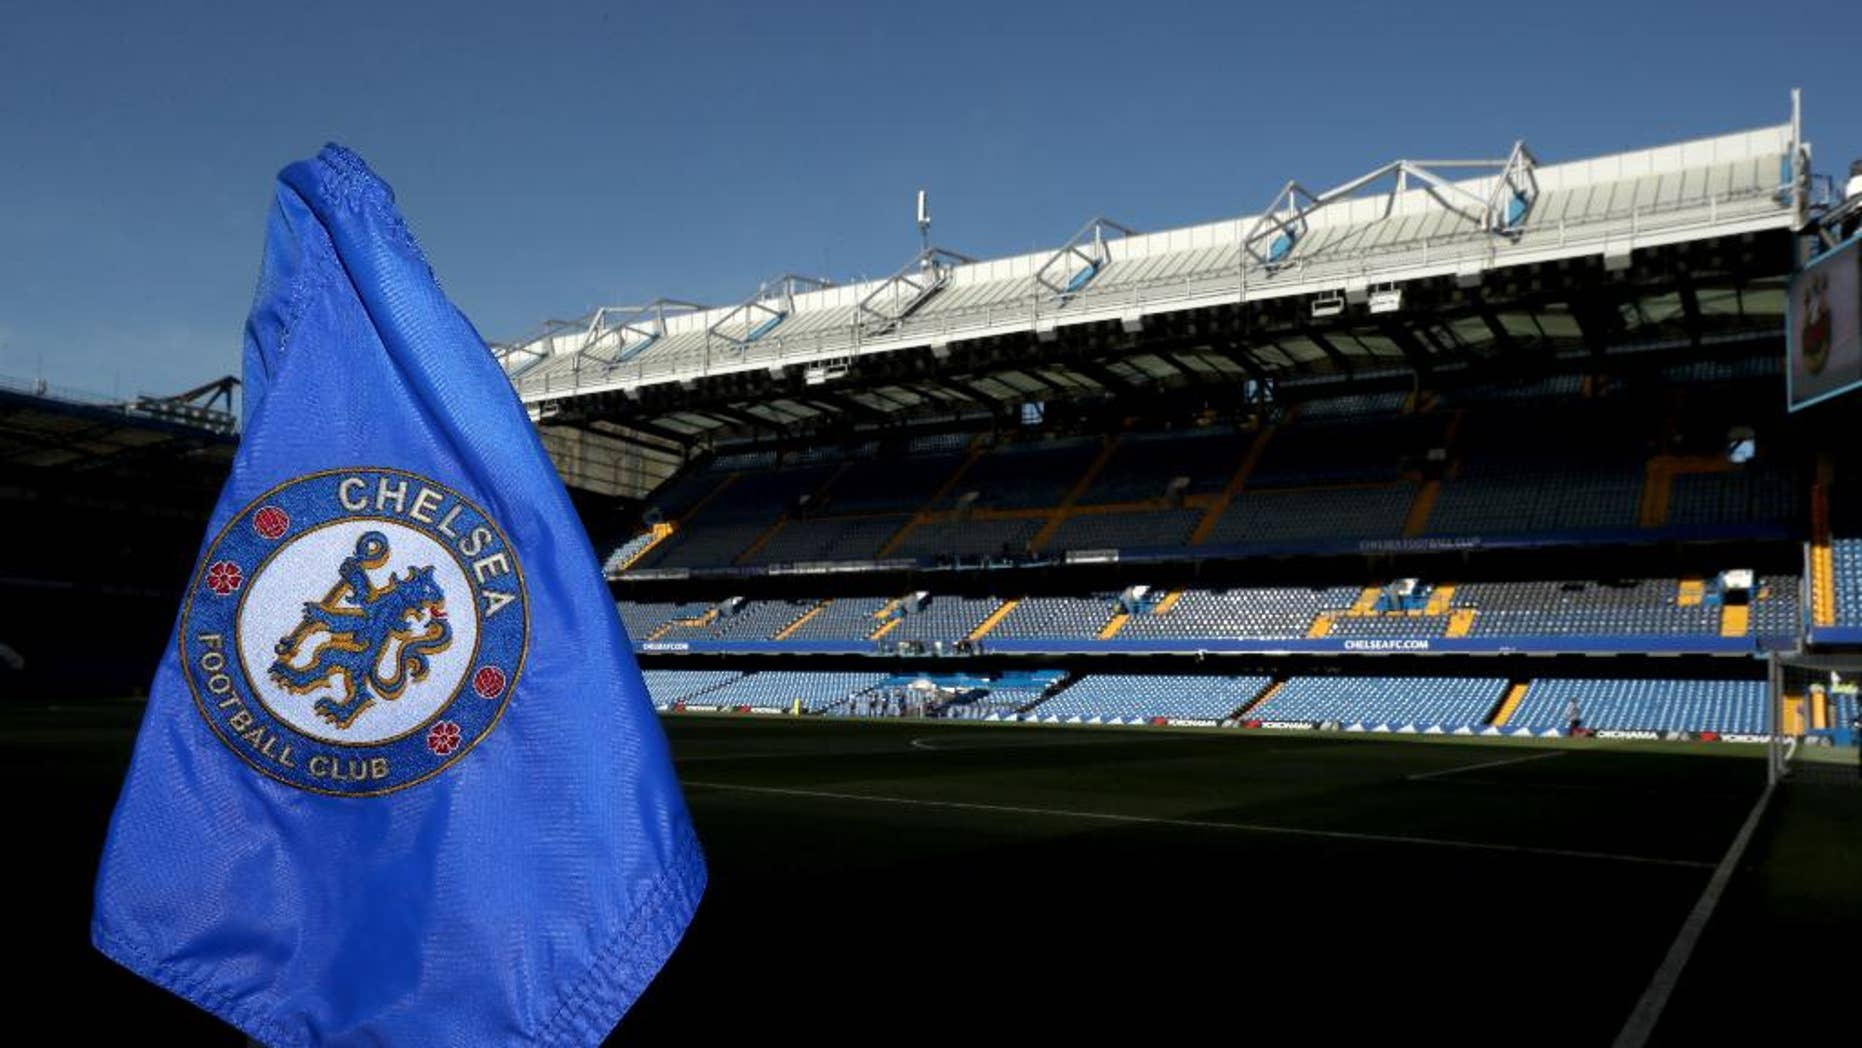 "FILE - This is a Aug. 15, 2016 file photo of a corner flag at Stamford Bridge, the home of Chelsea FC in London.  A former Chelsea player says he was paid by the Premier League club to ""keep a lid"" on sexual abuse he suffered at the hands of its former chief scout. Gary Johnson, who is now 57, told Britain's Daily Mirror newspaper he was groomed and sexually assaulted repeatedly every week from the age of 13 until he was 16 or 17.(Nick Potts/PA via AP)"